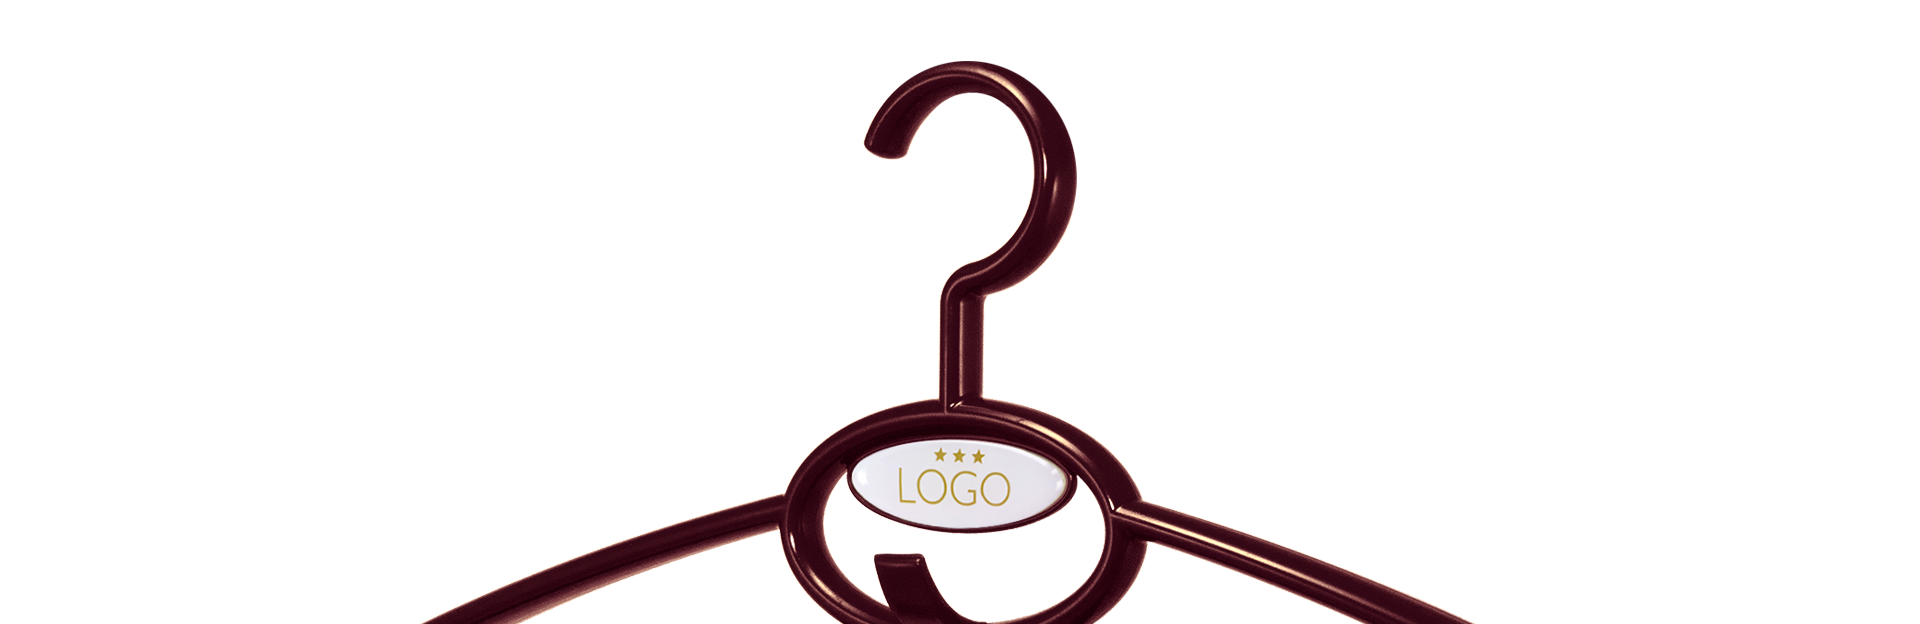 gno1hanger-custombranding-brown